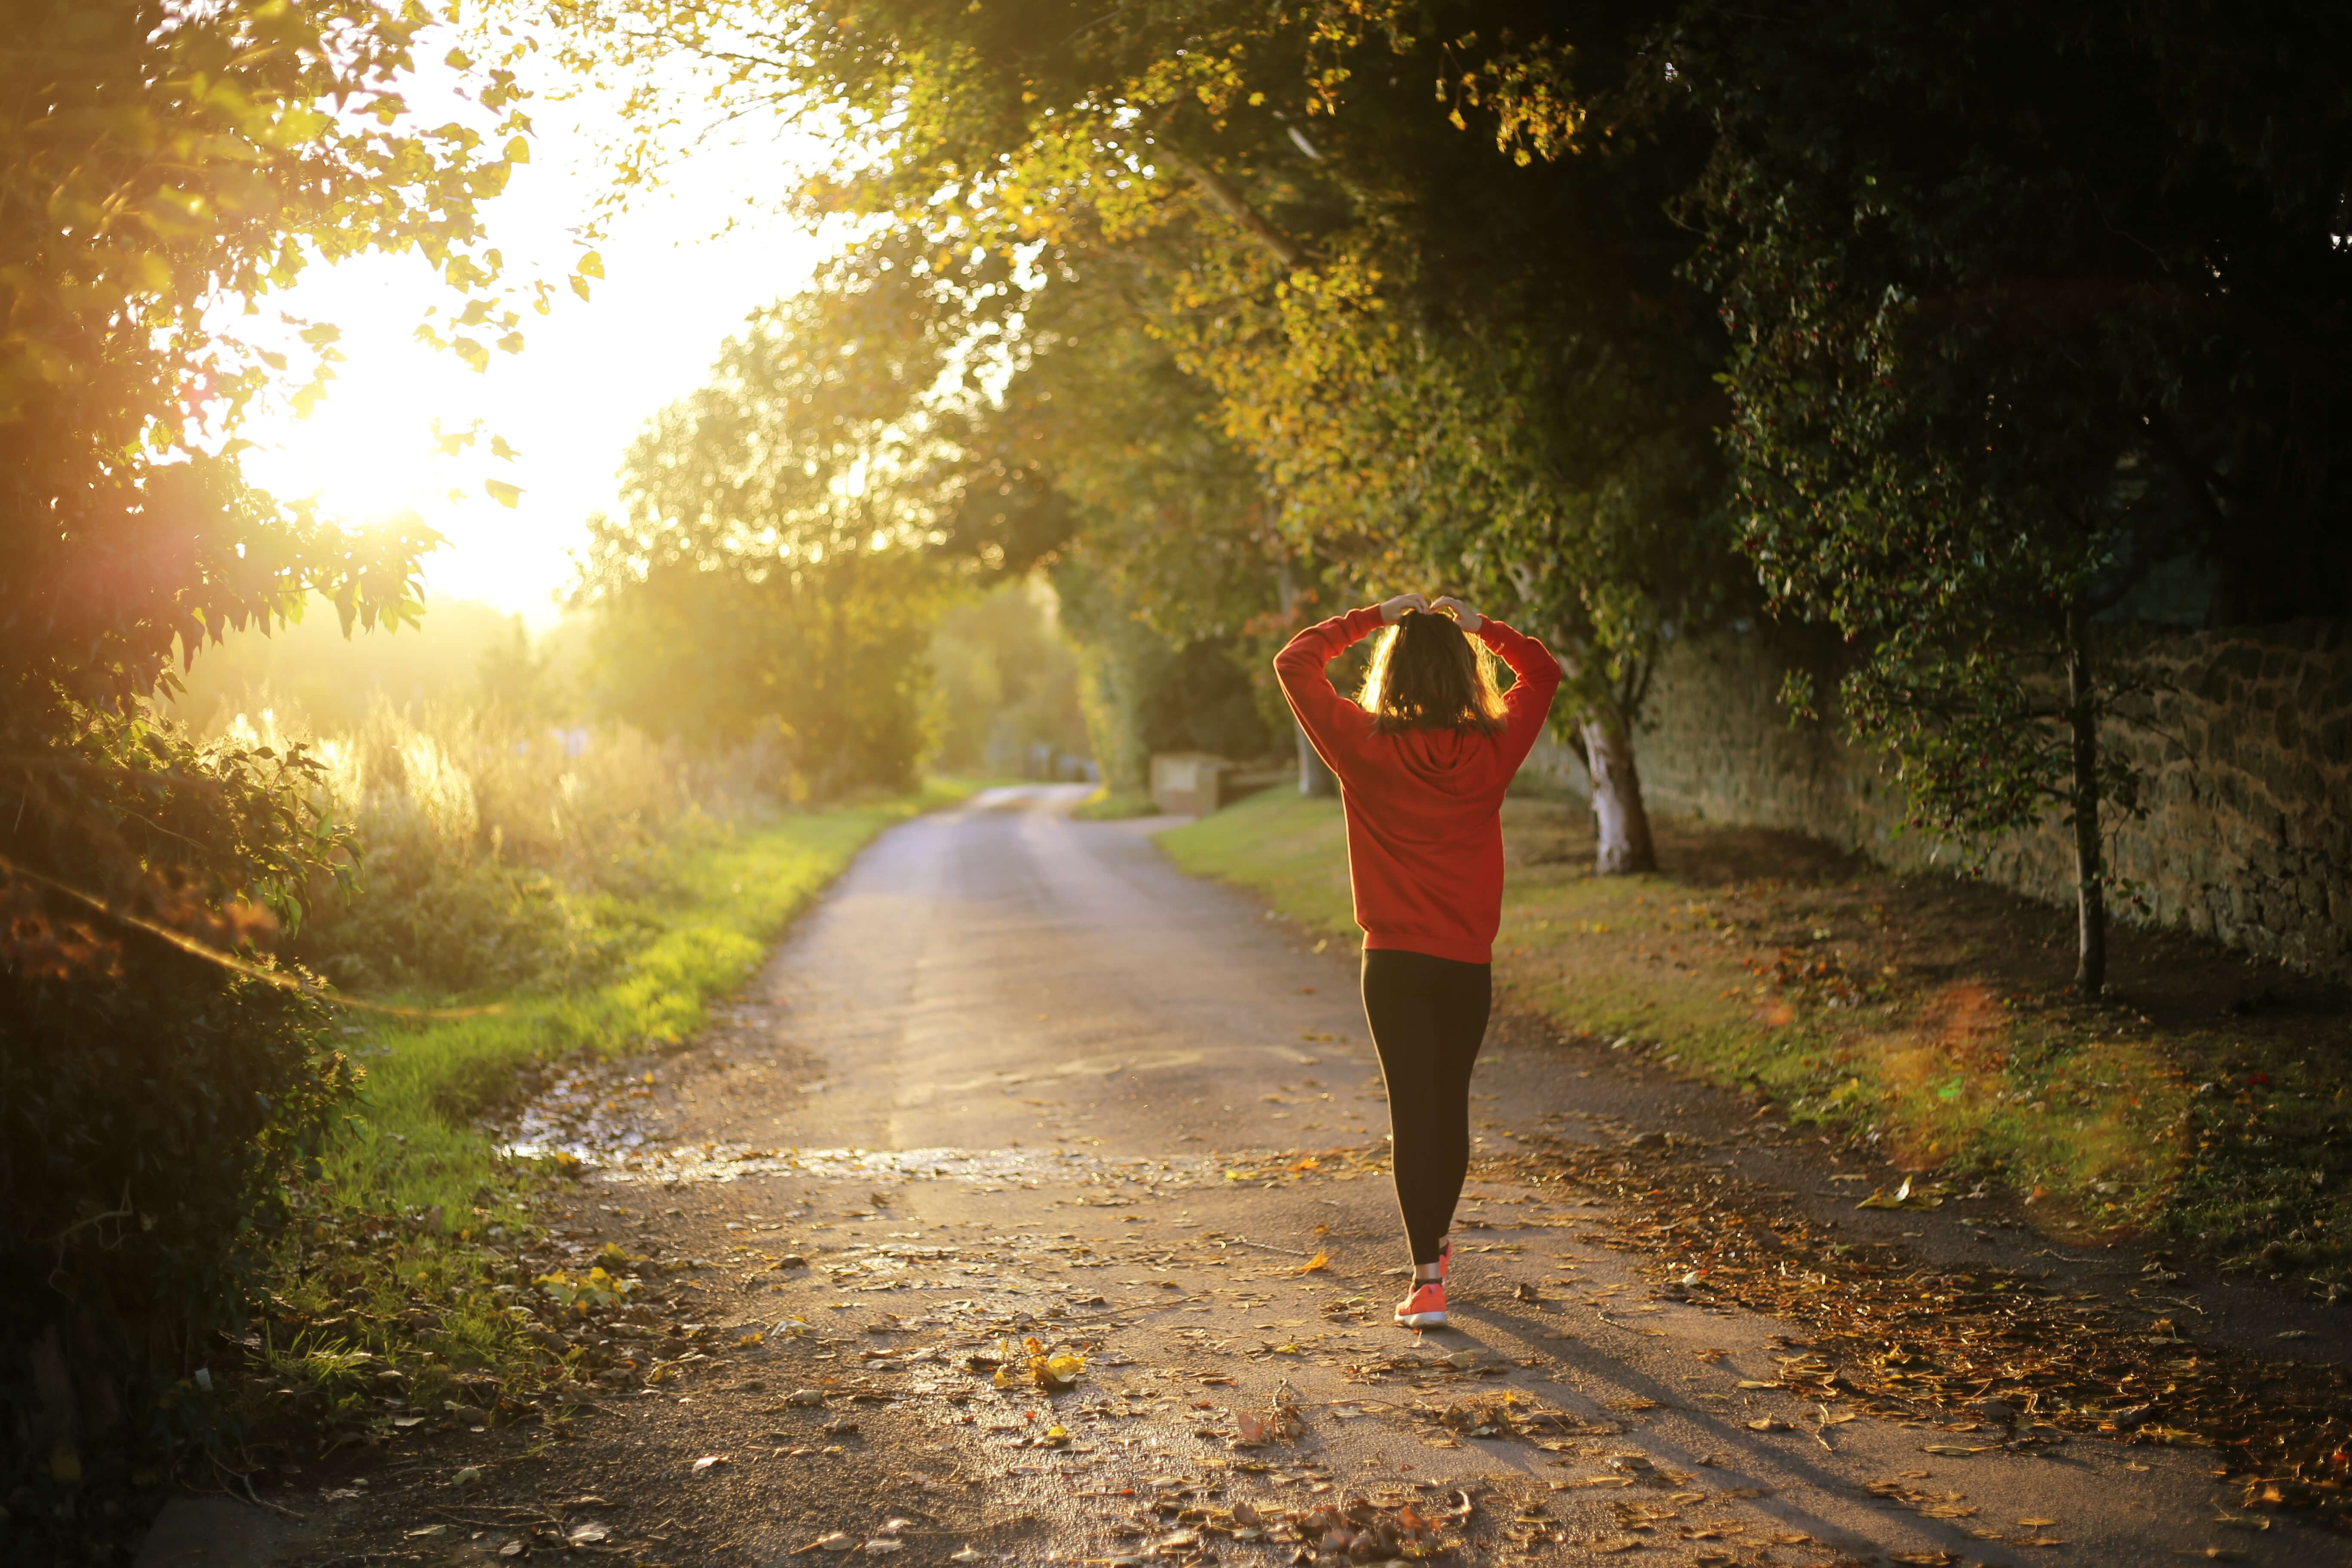 private medical insurance takes into account your physical activity